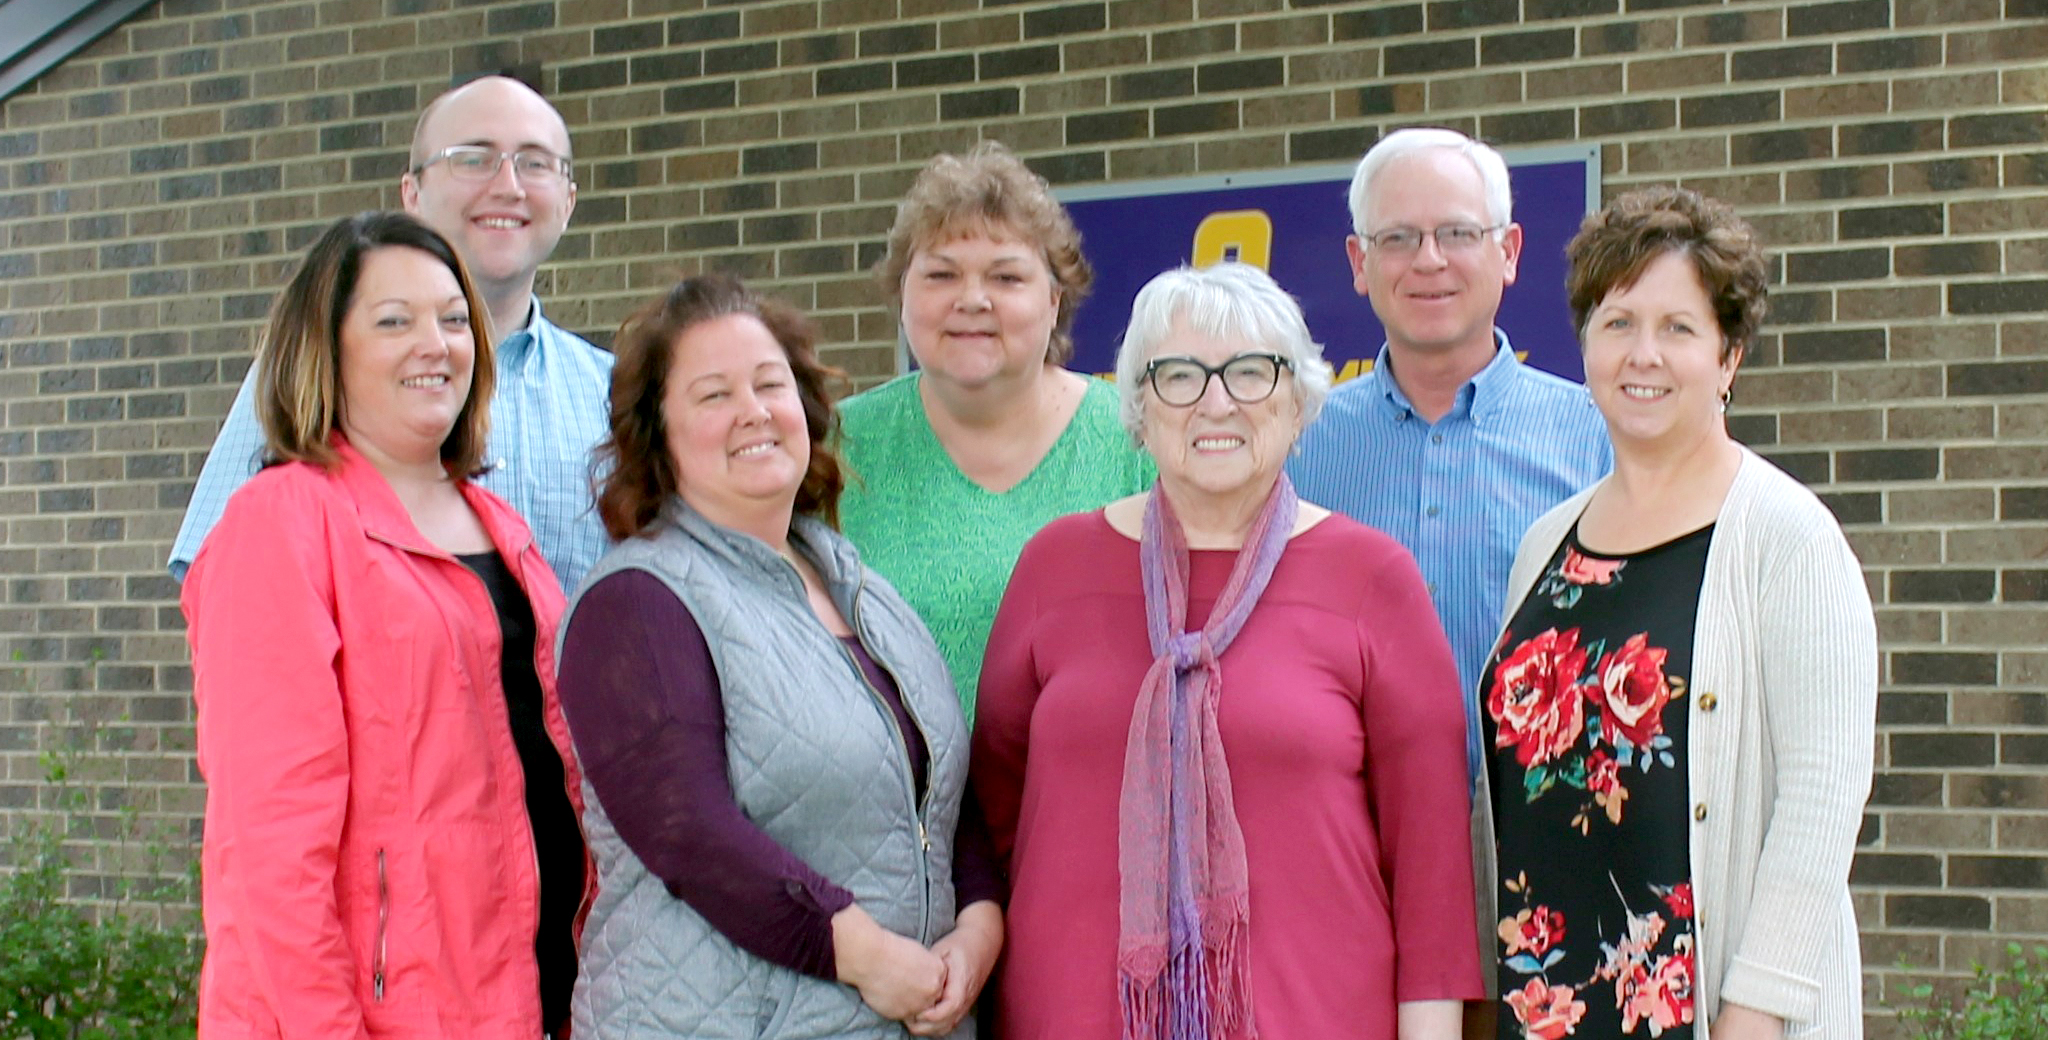 the Oelwein school board poses outside the central office building